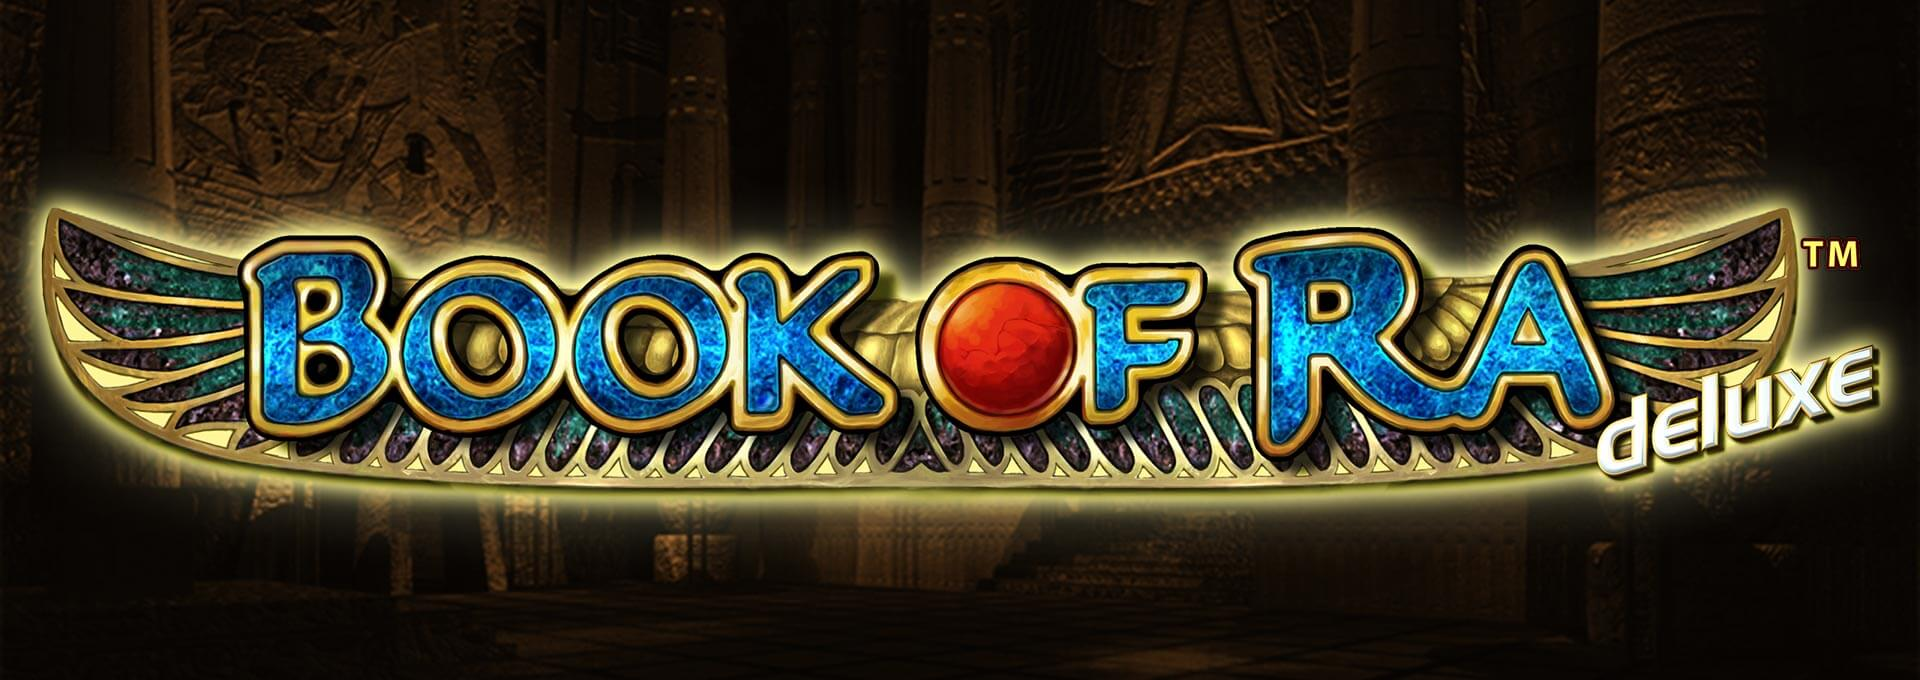 prism online casino slots book of ra free download